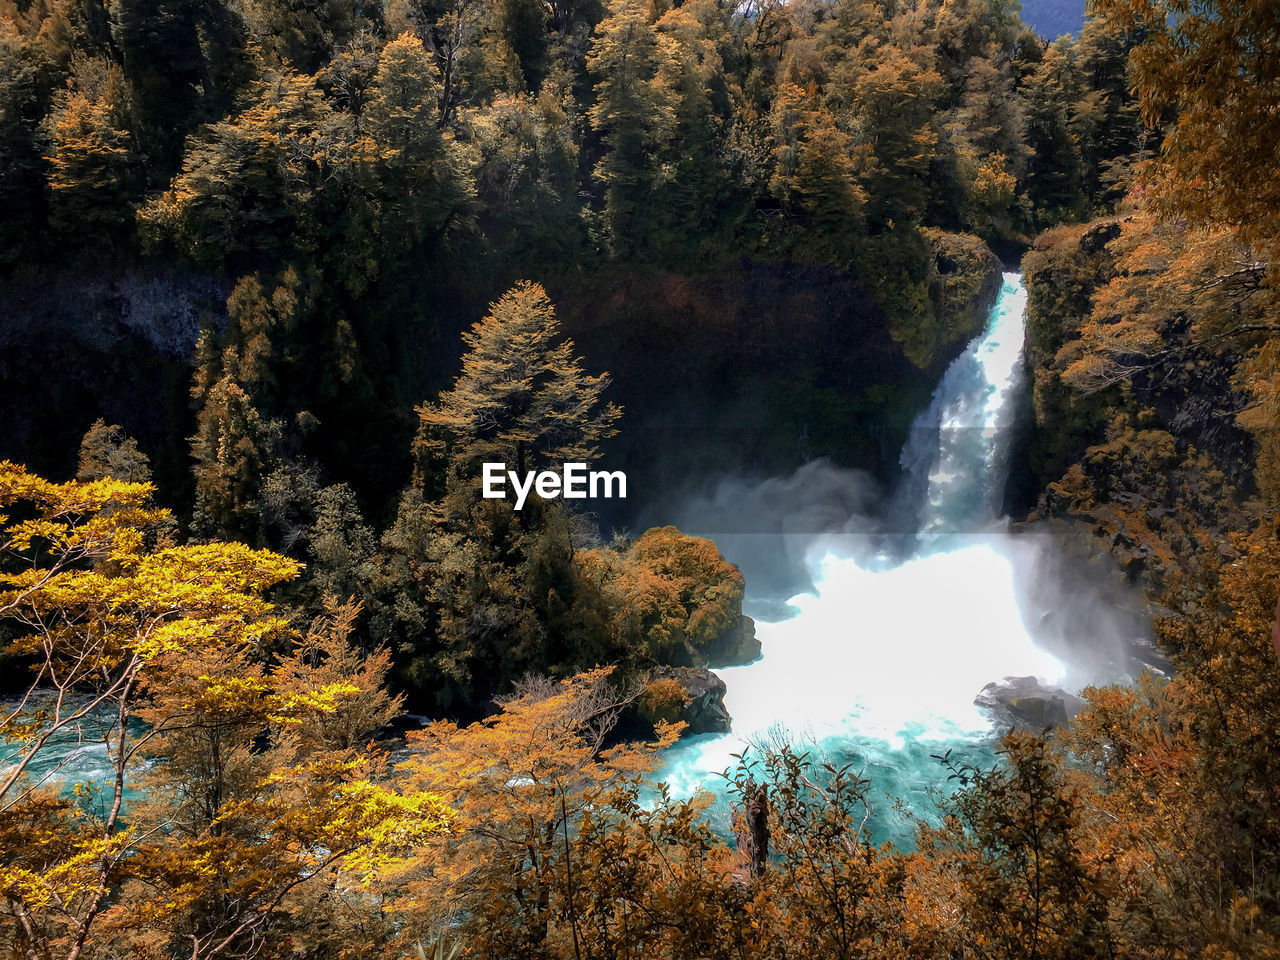 tree, beauty in nature, plant, scenics - nature, autumn, forest, growth, water, change, nature, no people, non-urban scene, land, motion, waterfall, rock, day, tranquility, tranquil scene, outdoors, flowing water, power in nature, flowing, rainforest